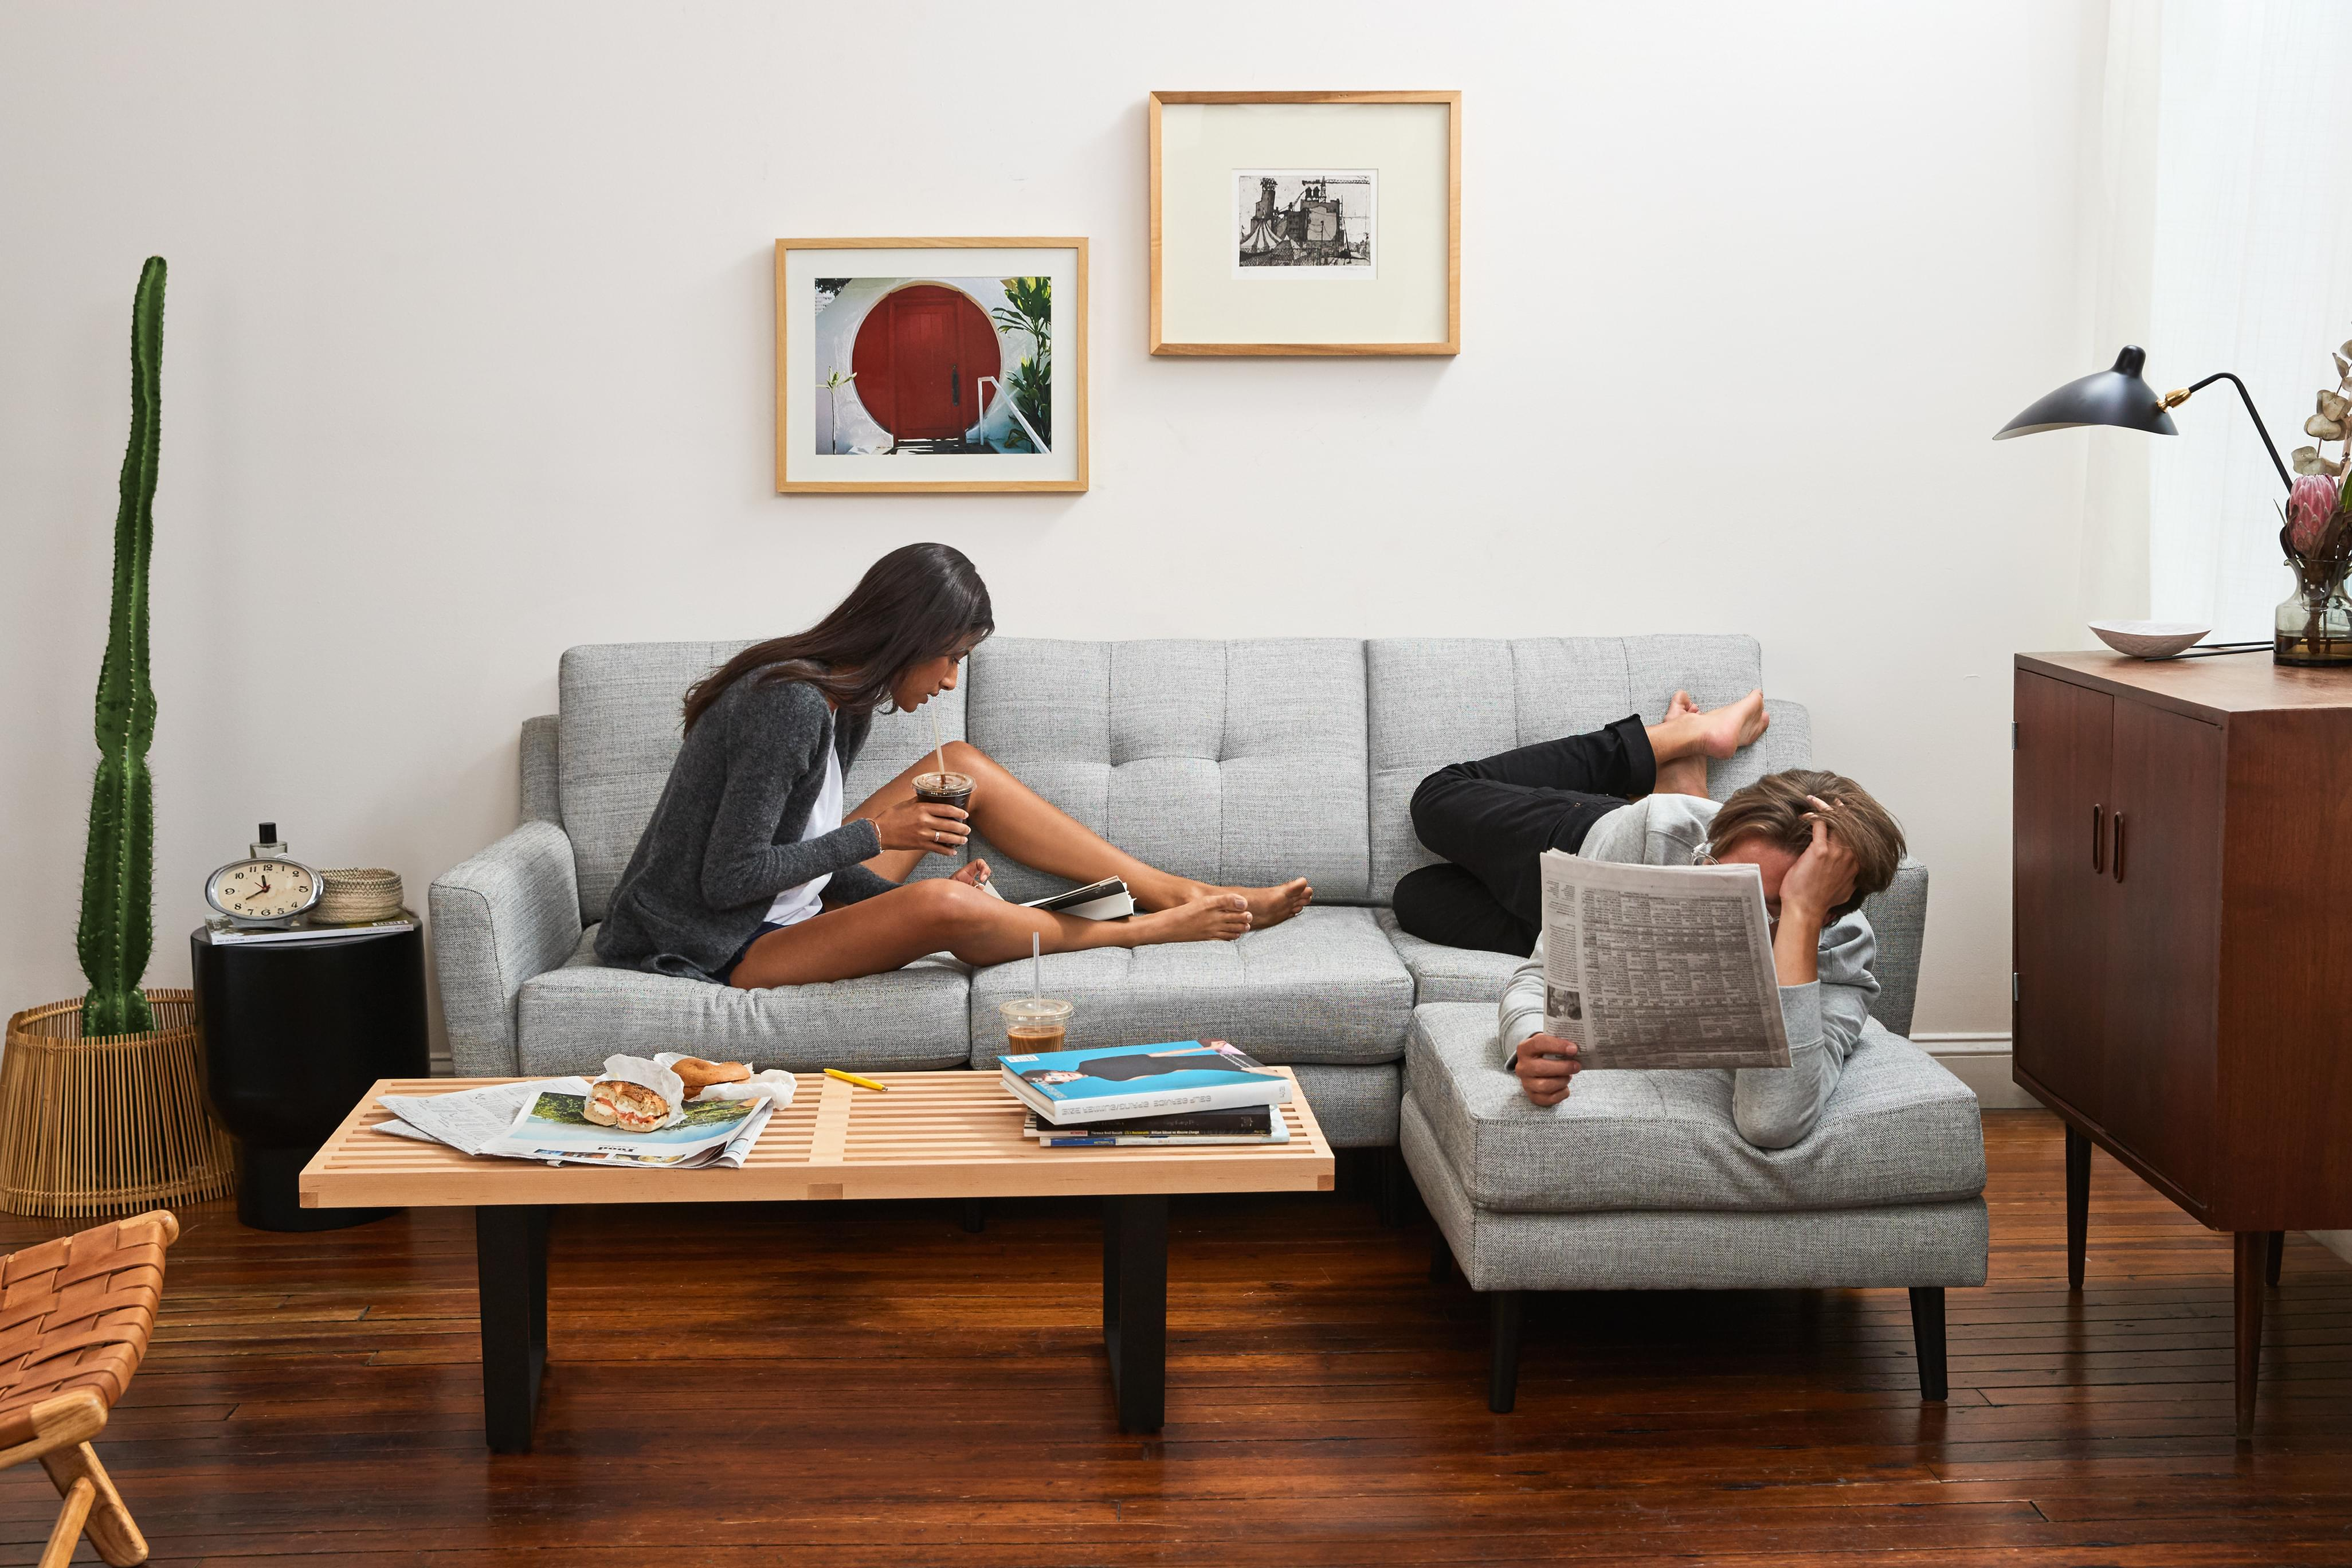 The luxury couch for real life burrow the luxury couch for real life parisarafo Choice Image